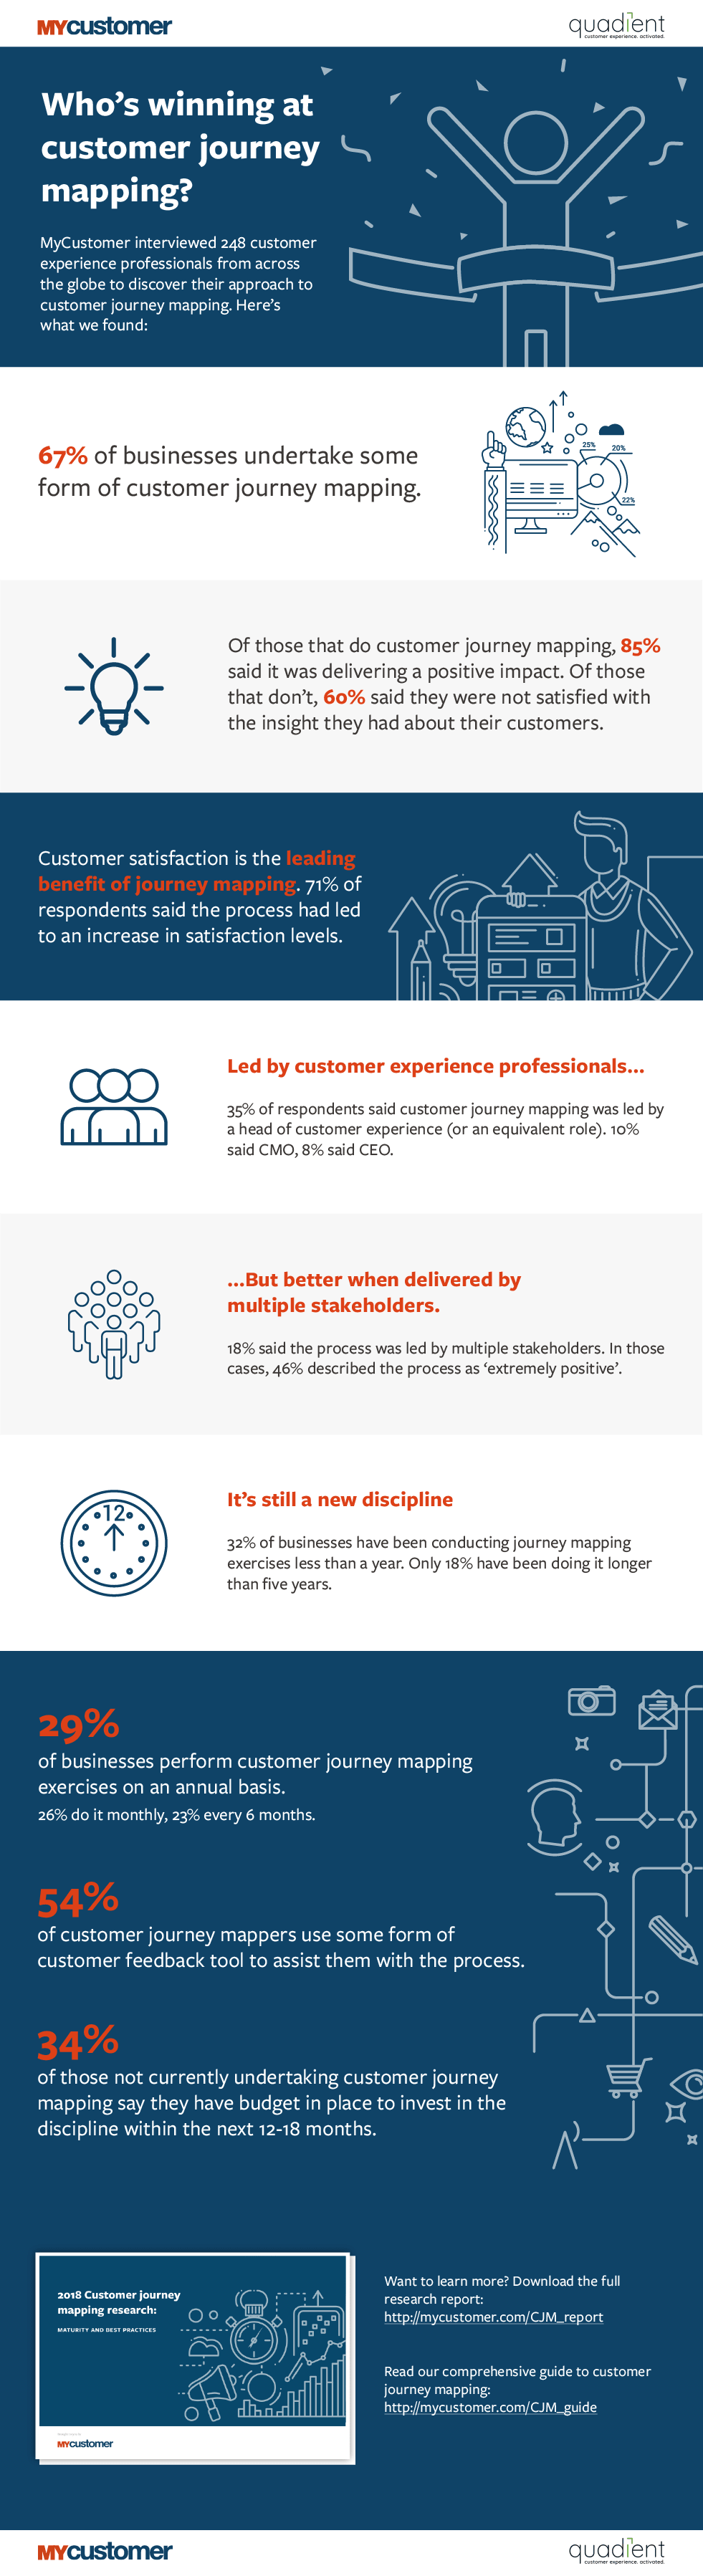 customer journey mapping research results infographic